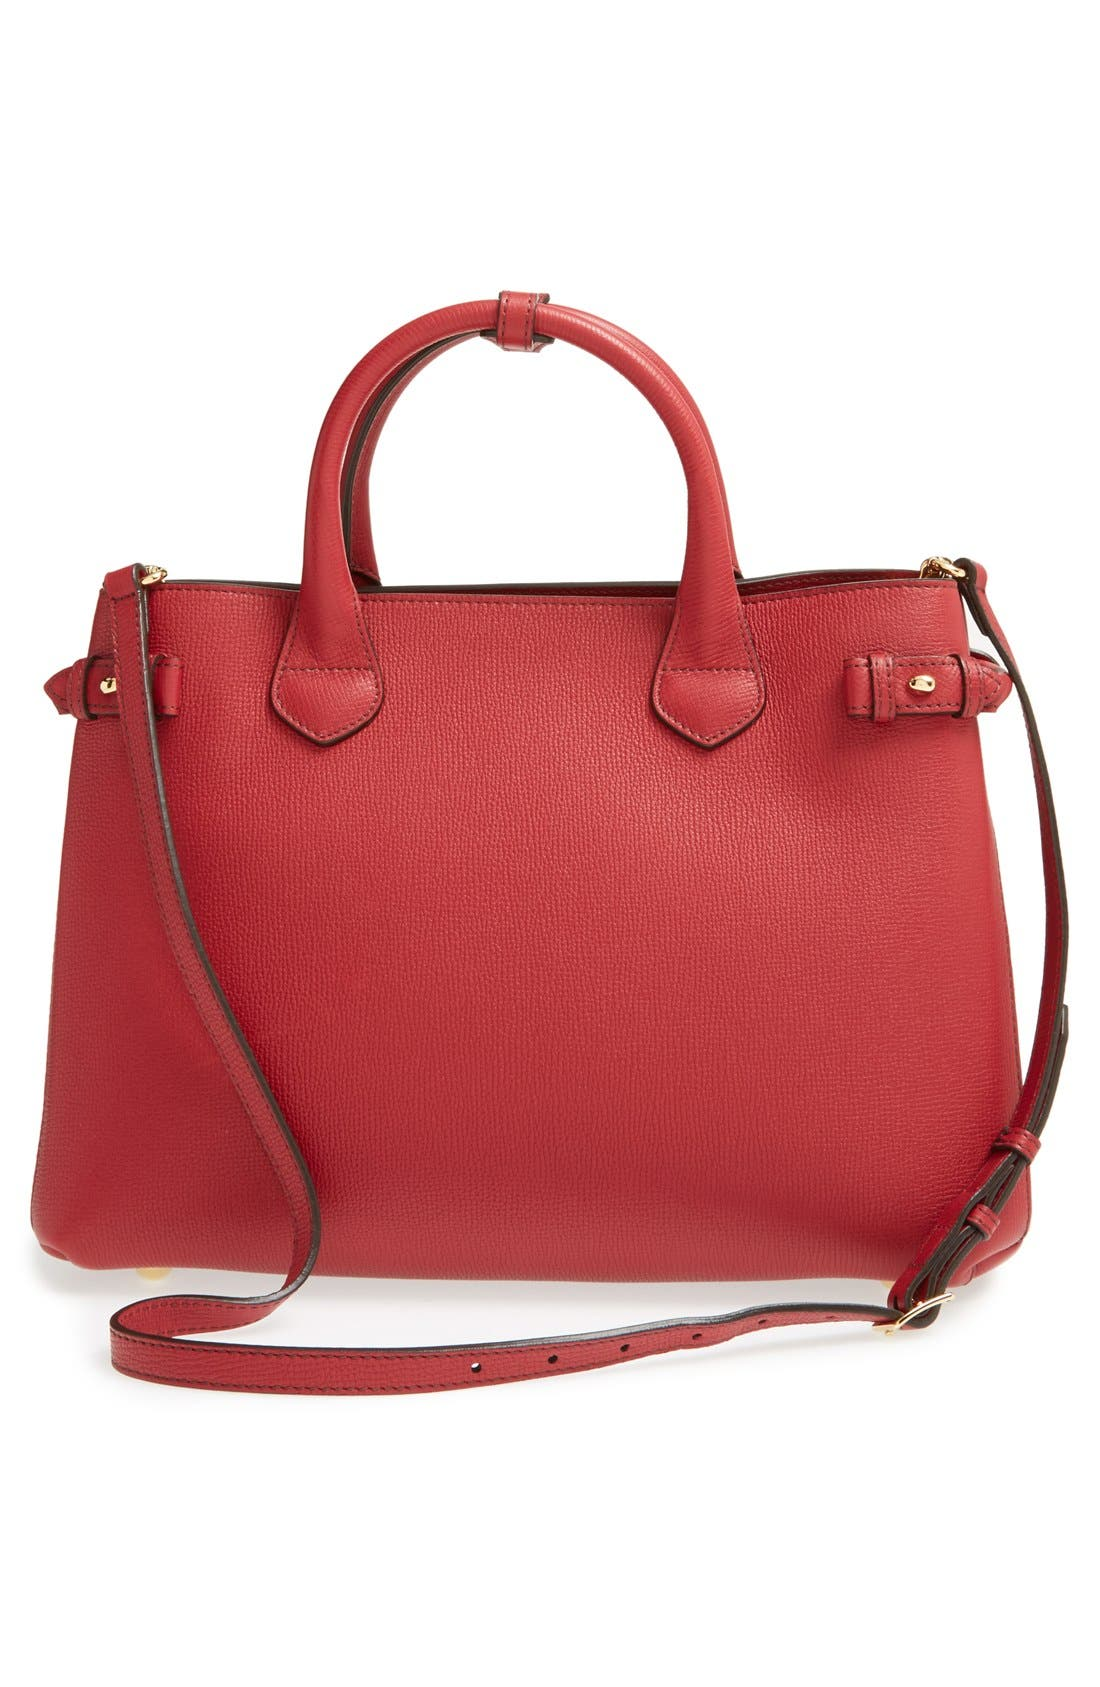 Medium Banner Leather Tote,                             Alternate thumbnail 2, color,                             RUSSET RED